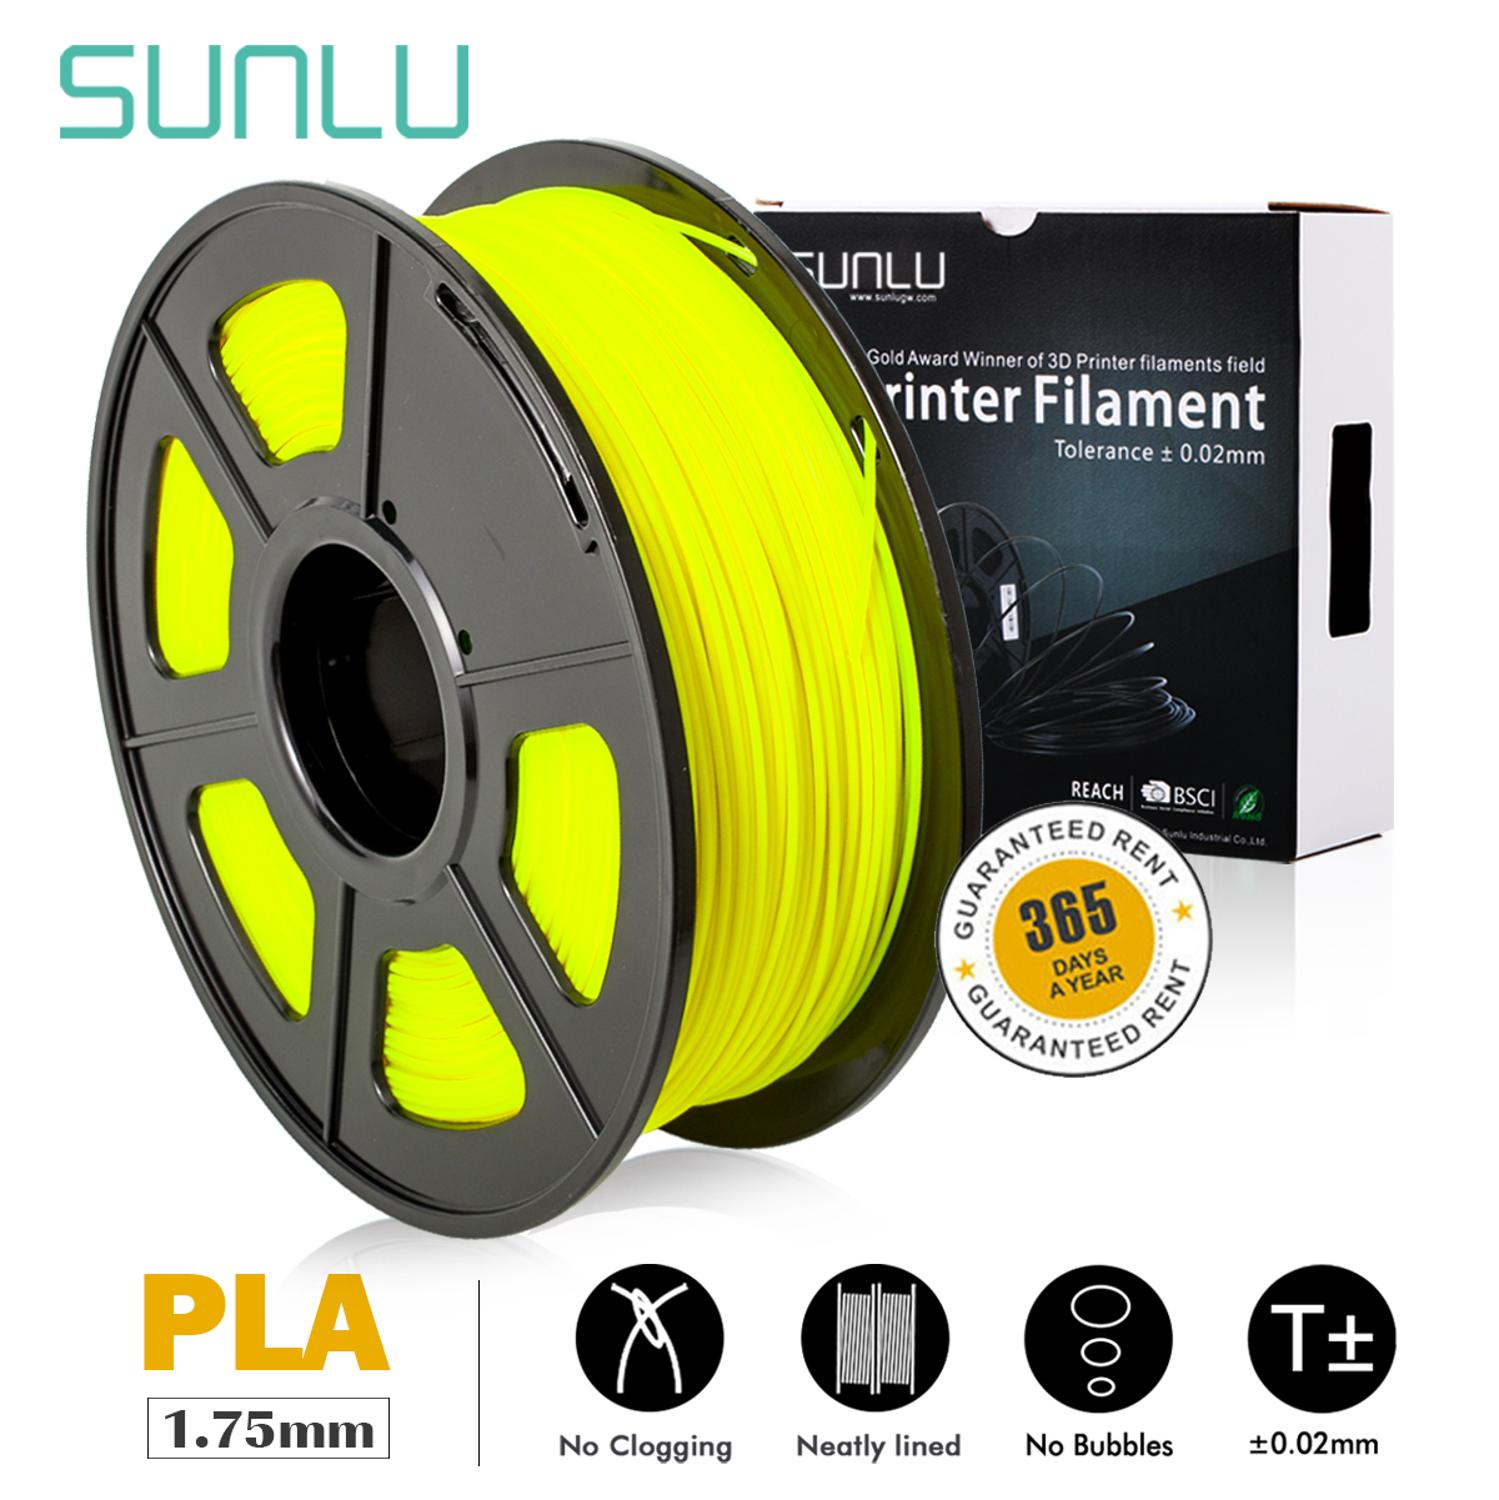 SUNLU 1kg 1.75mm PLA Filament For 3D Printing With 0.02mm Tolerance And No Bubble Pla Harmless Material 3D Print